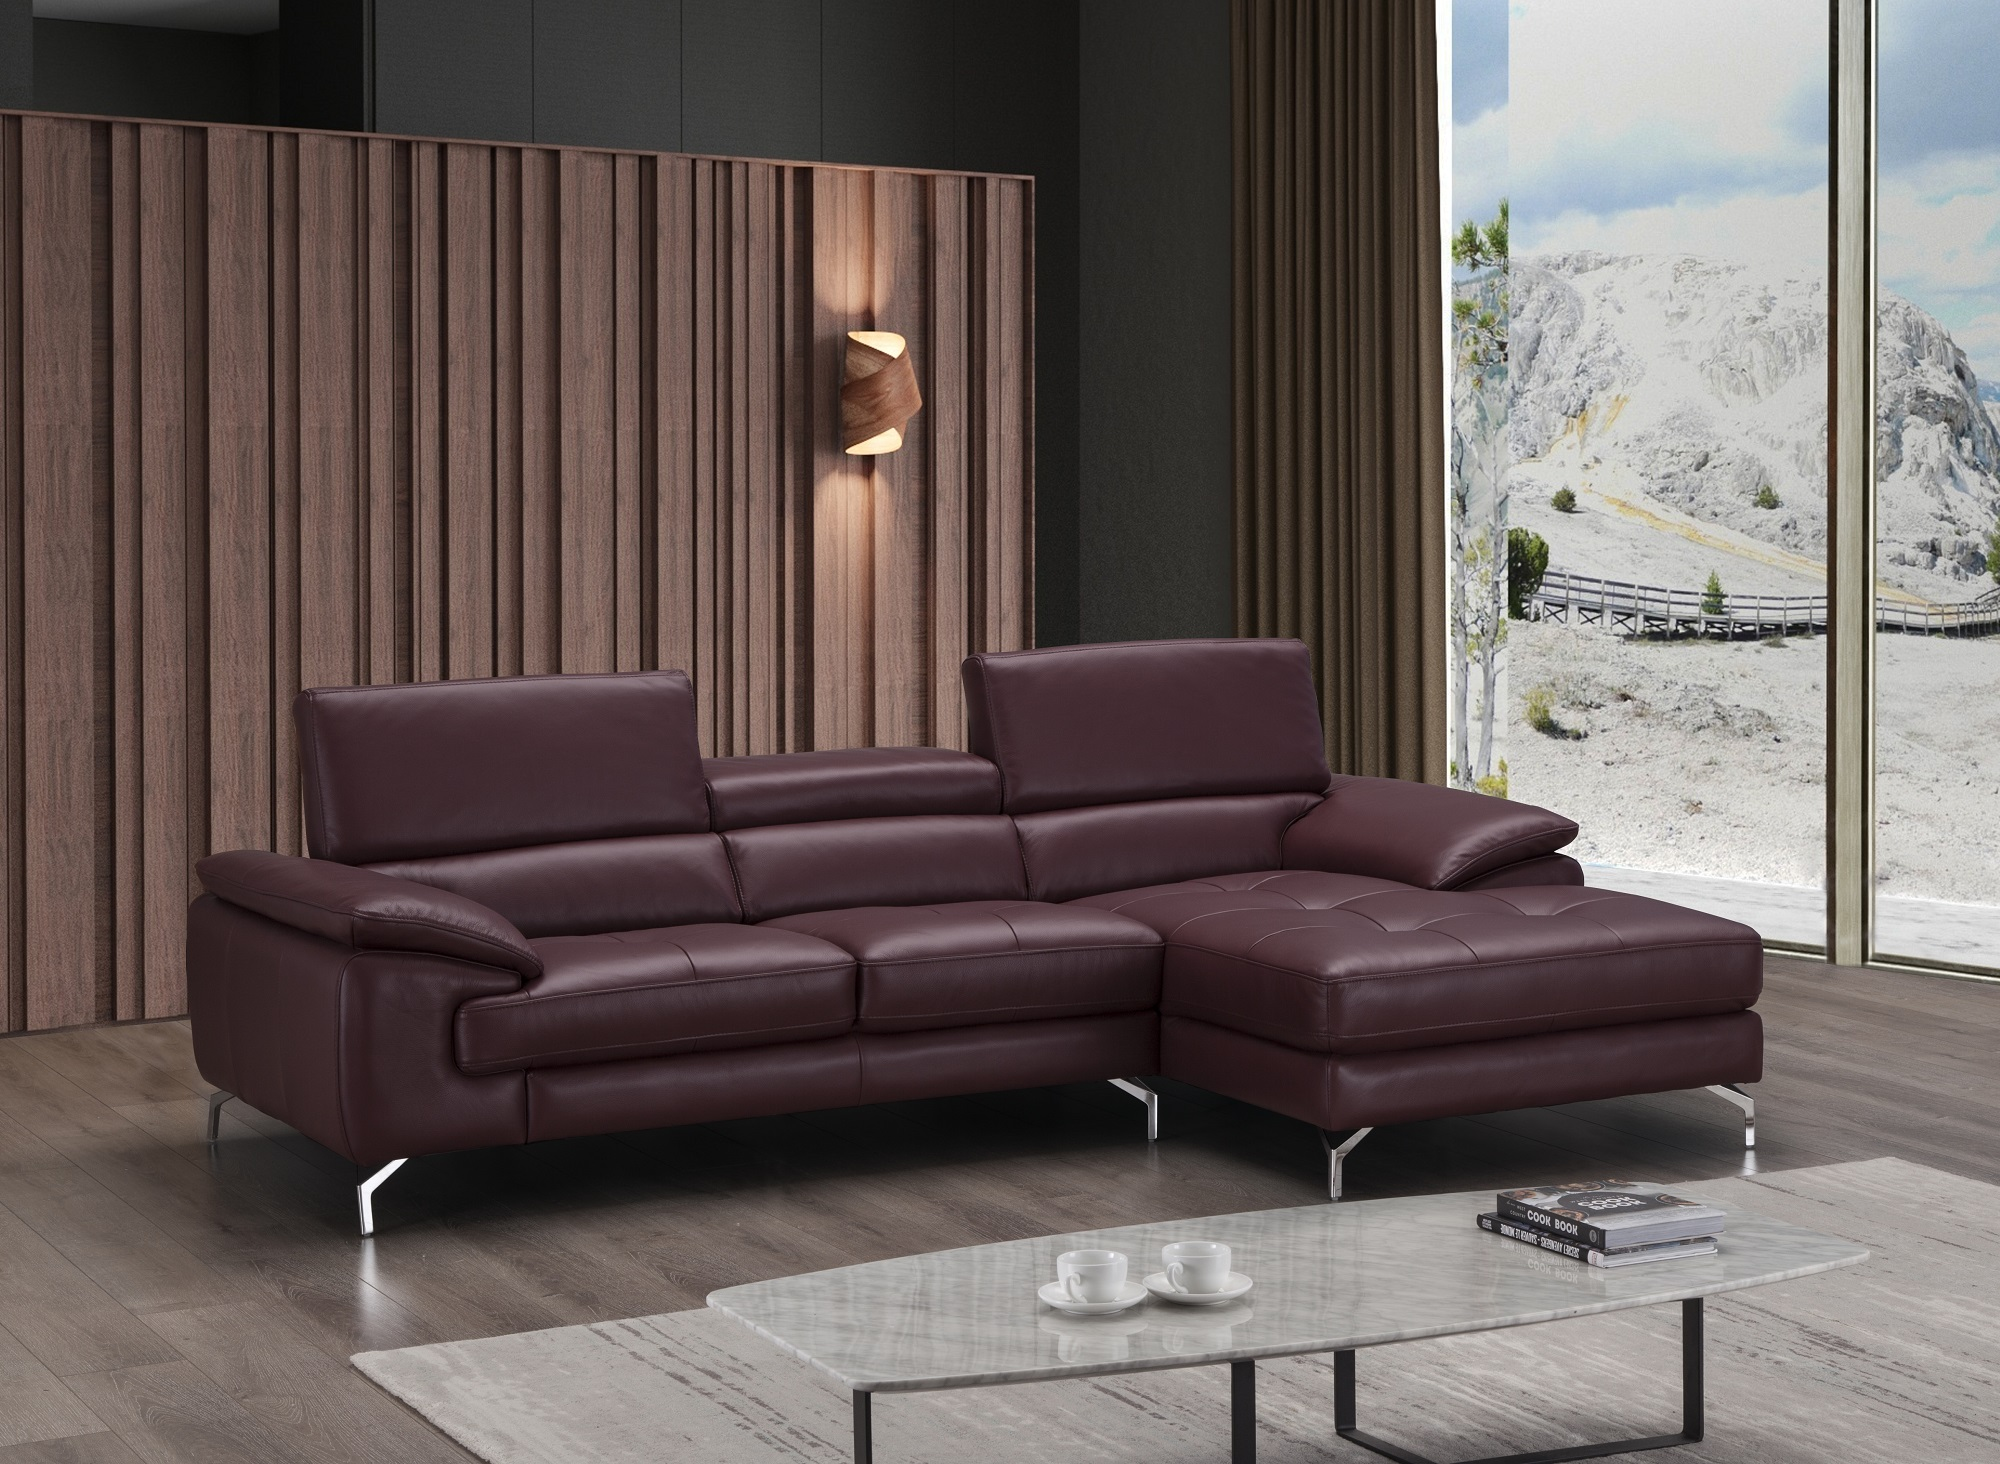 Strange Exclusive Tufted 100 Italian Leather Sectional Camellatalisay Diy Chair Ideas Camellatalisaycom